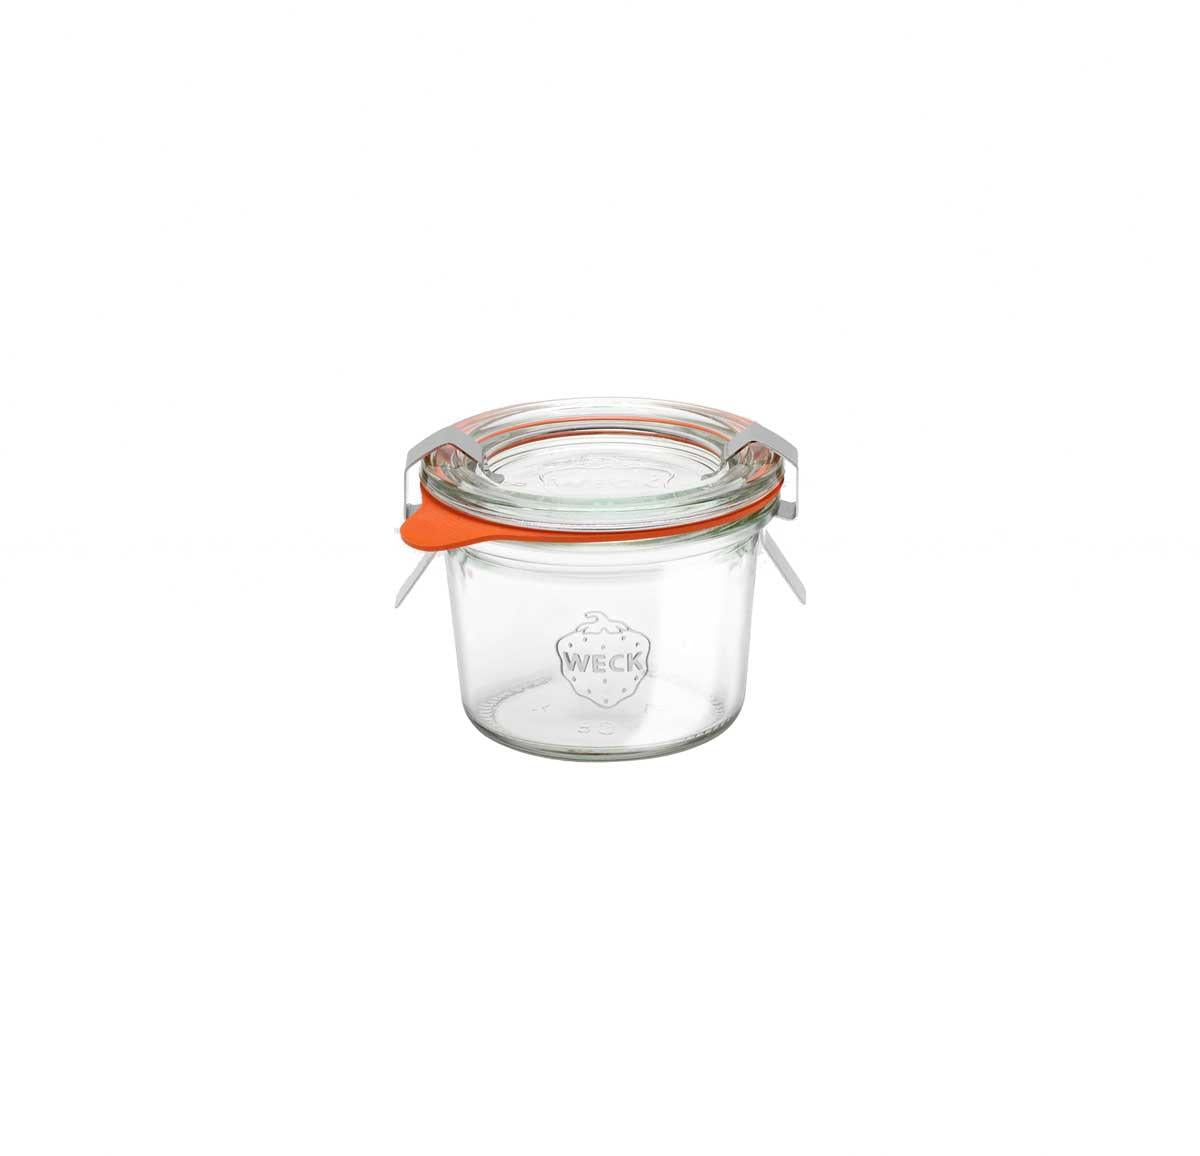 60ml Small Weck Glass Mold Jar